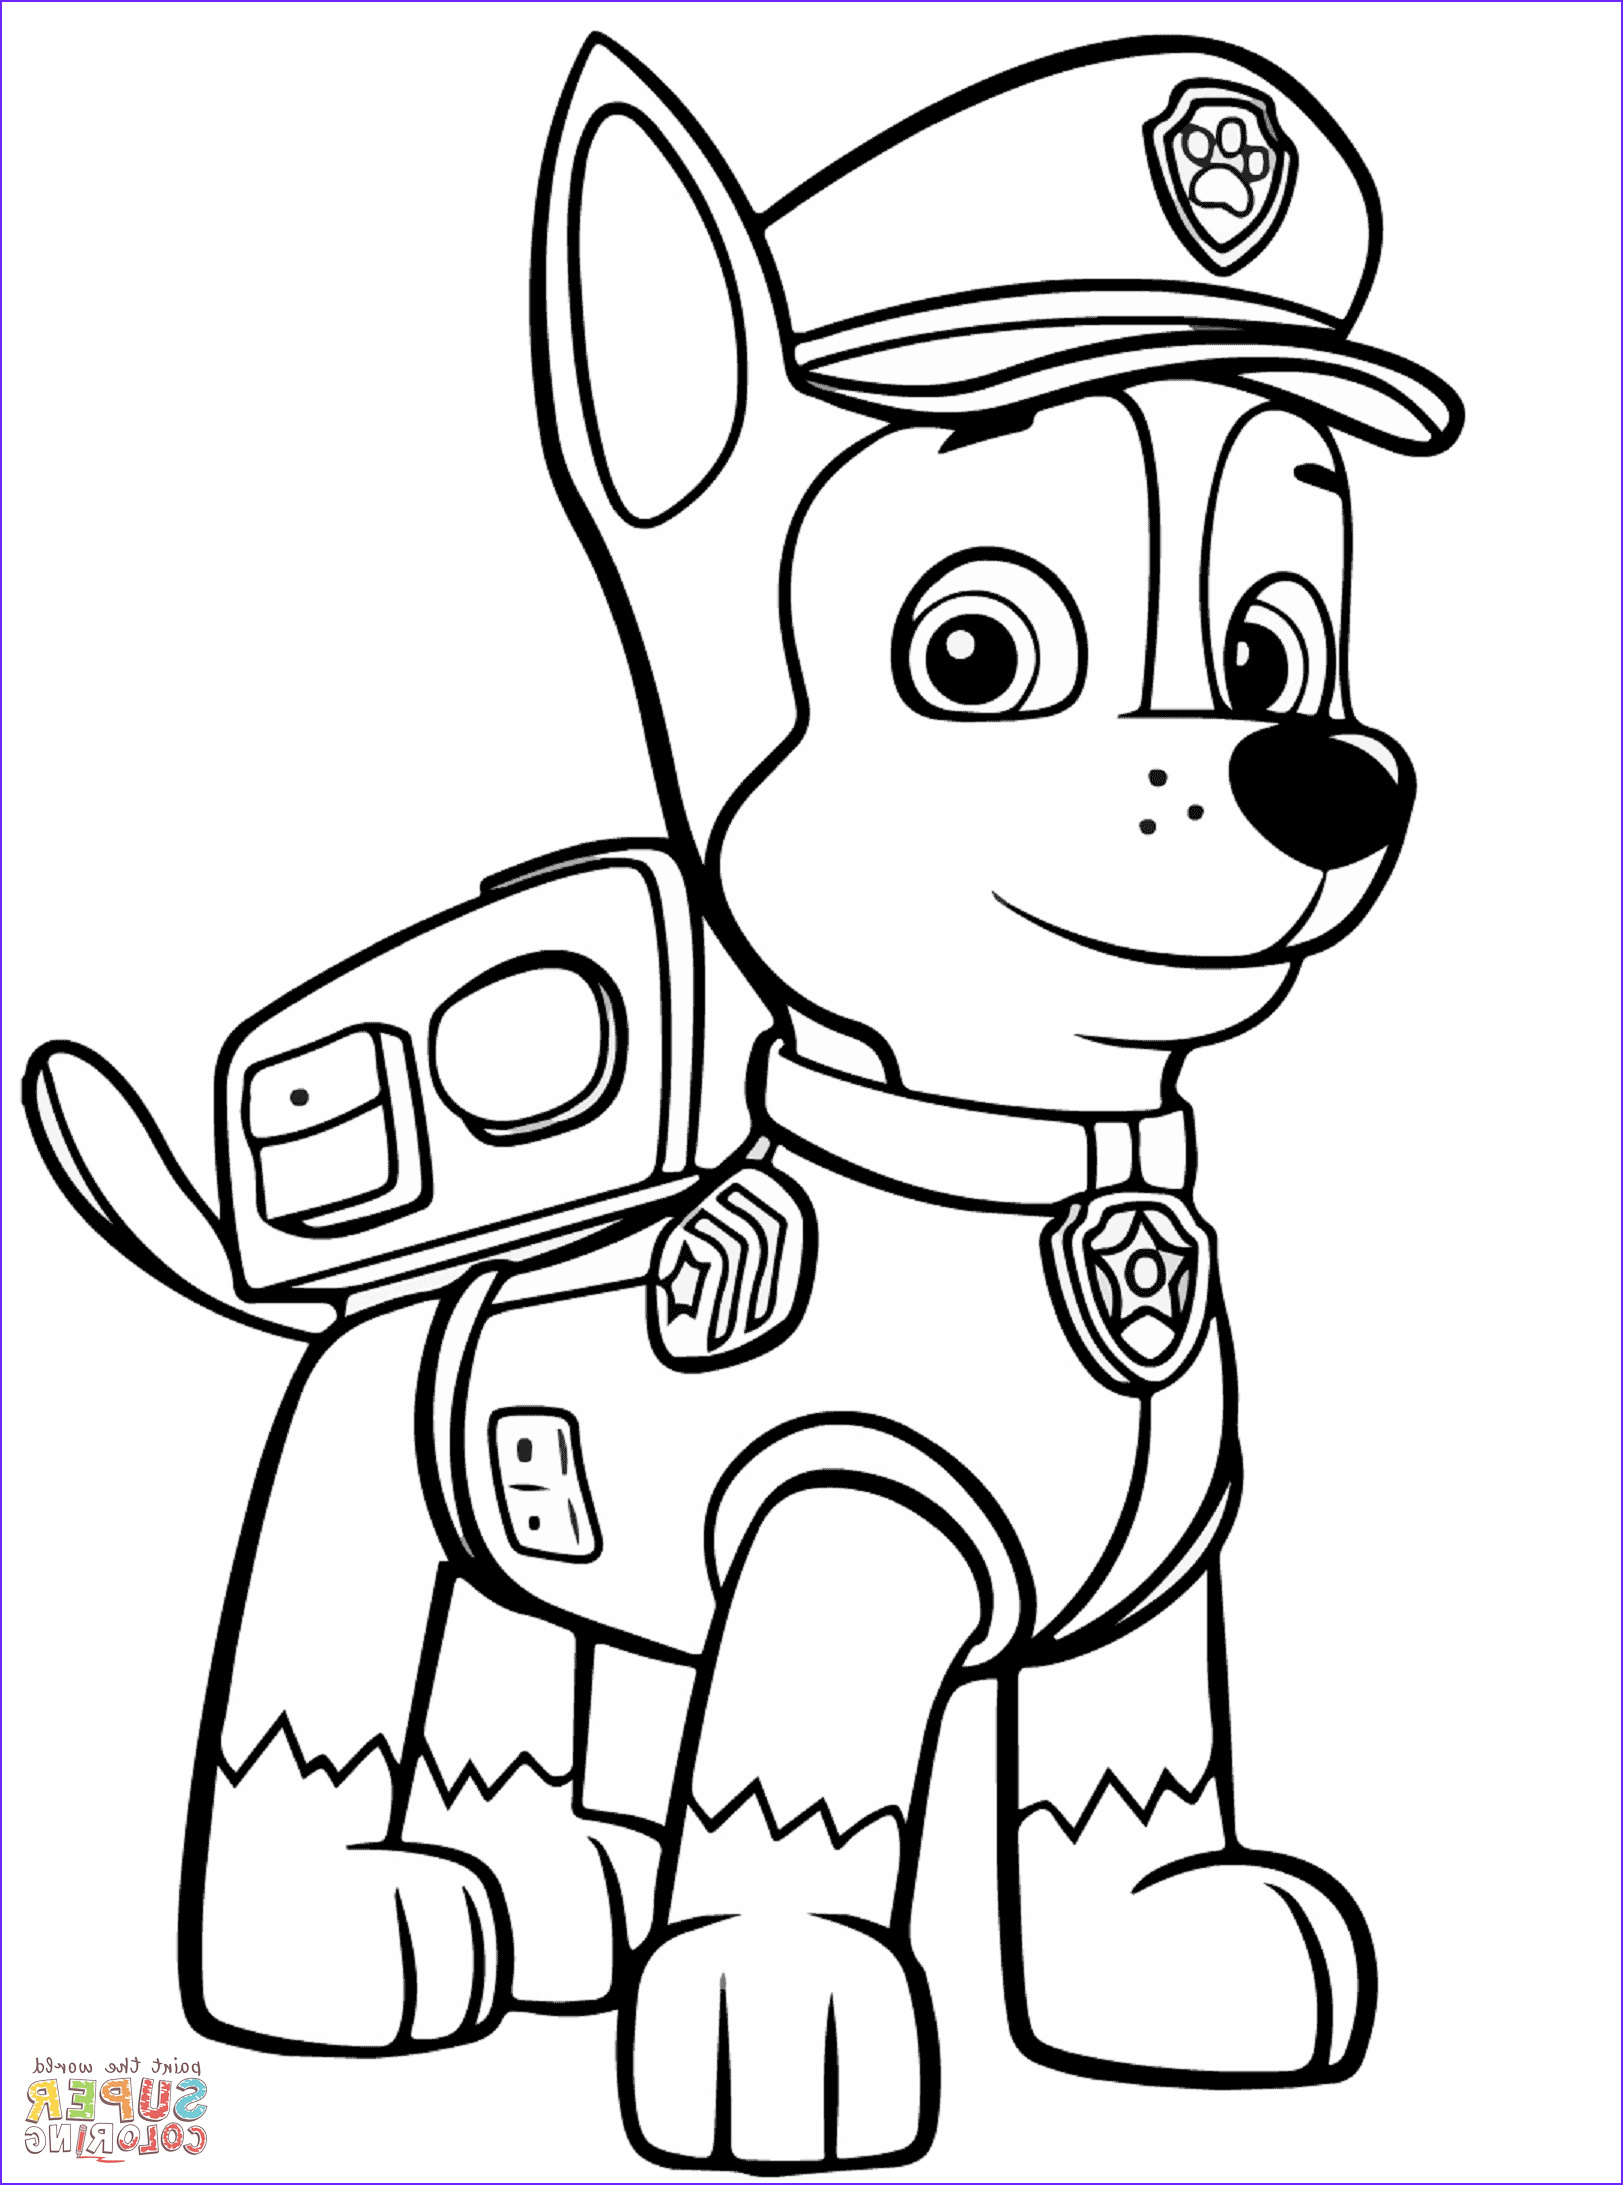 Chase Coloring Page Unique Images Paw Patrol Chase Coloring Page